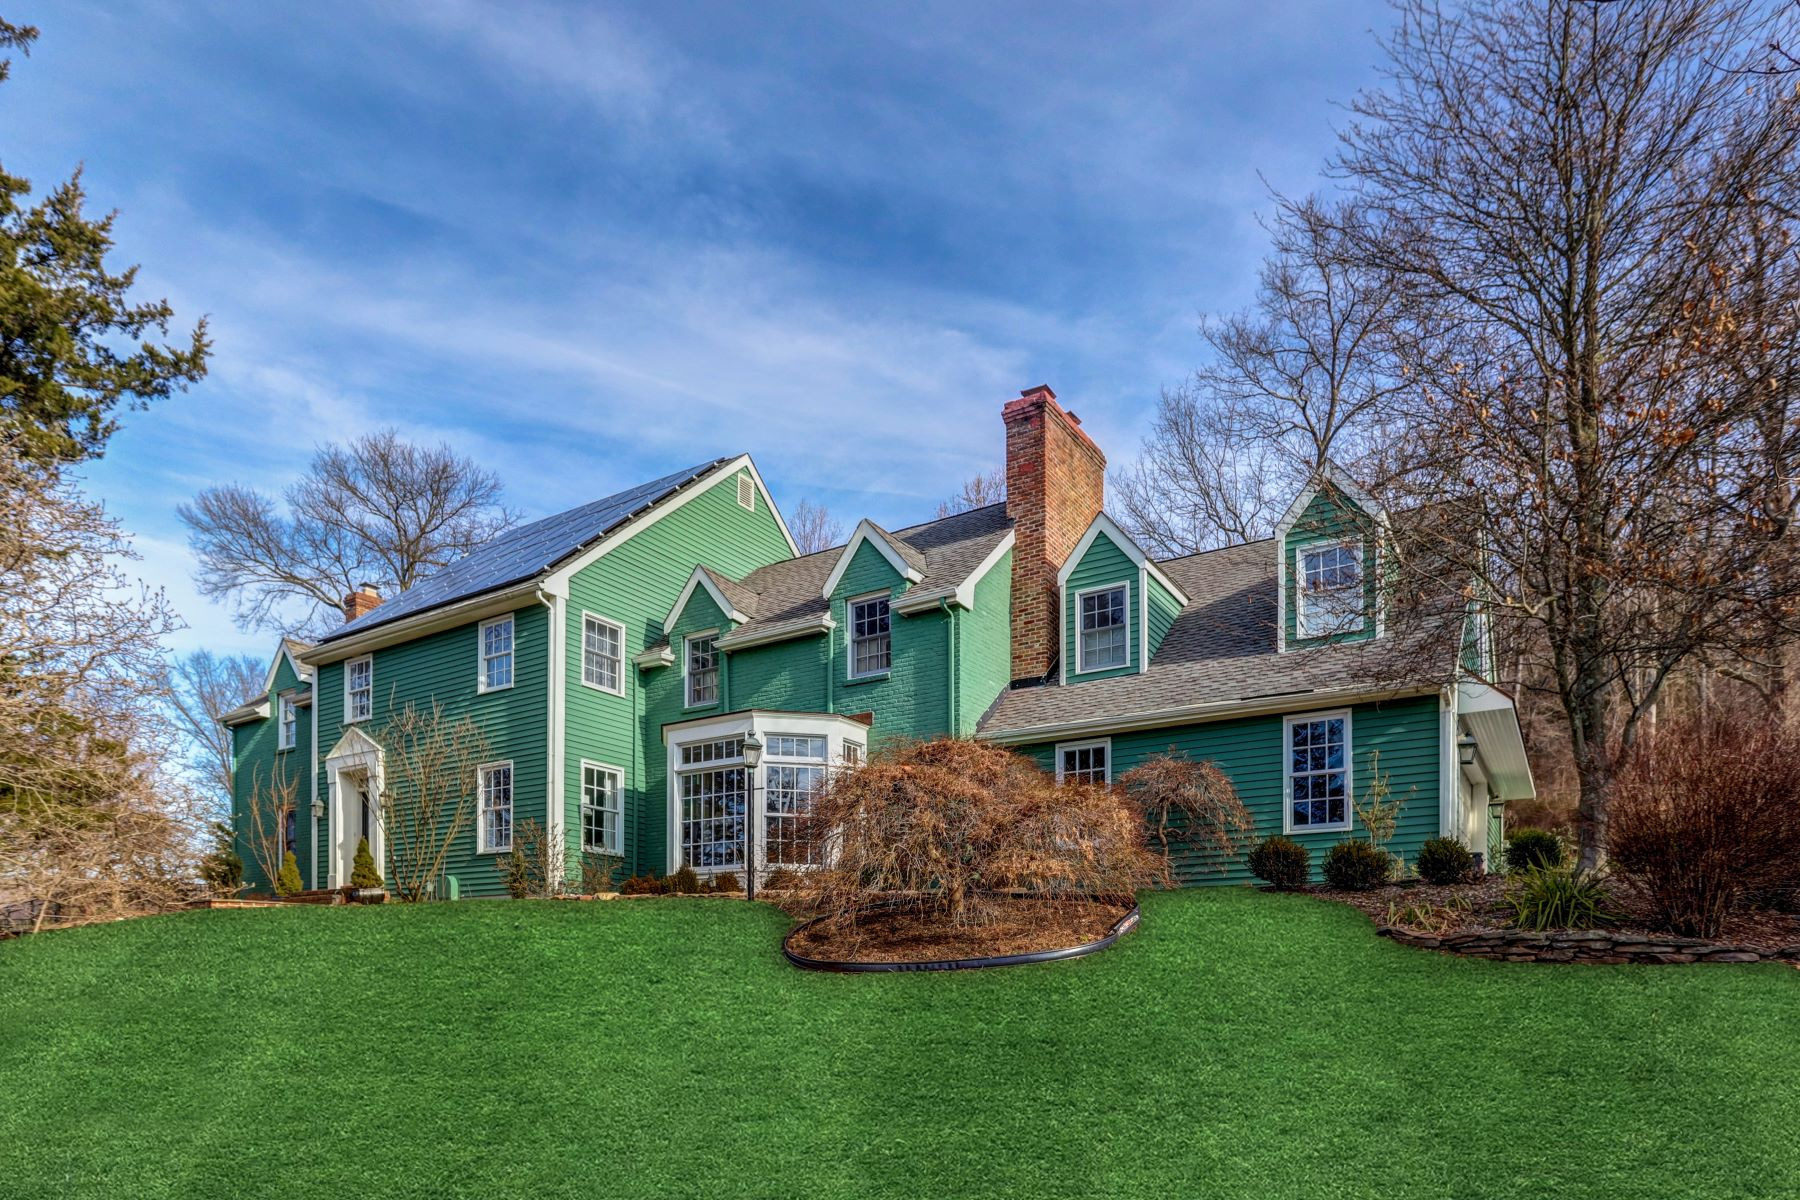 Single Family Homes for Sale at Gracious Colonial 23 Roundtop Road Tewksbury Township, New Jersey 08833 United States